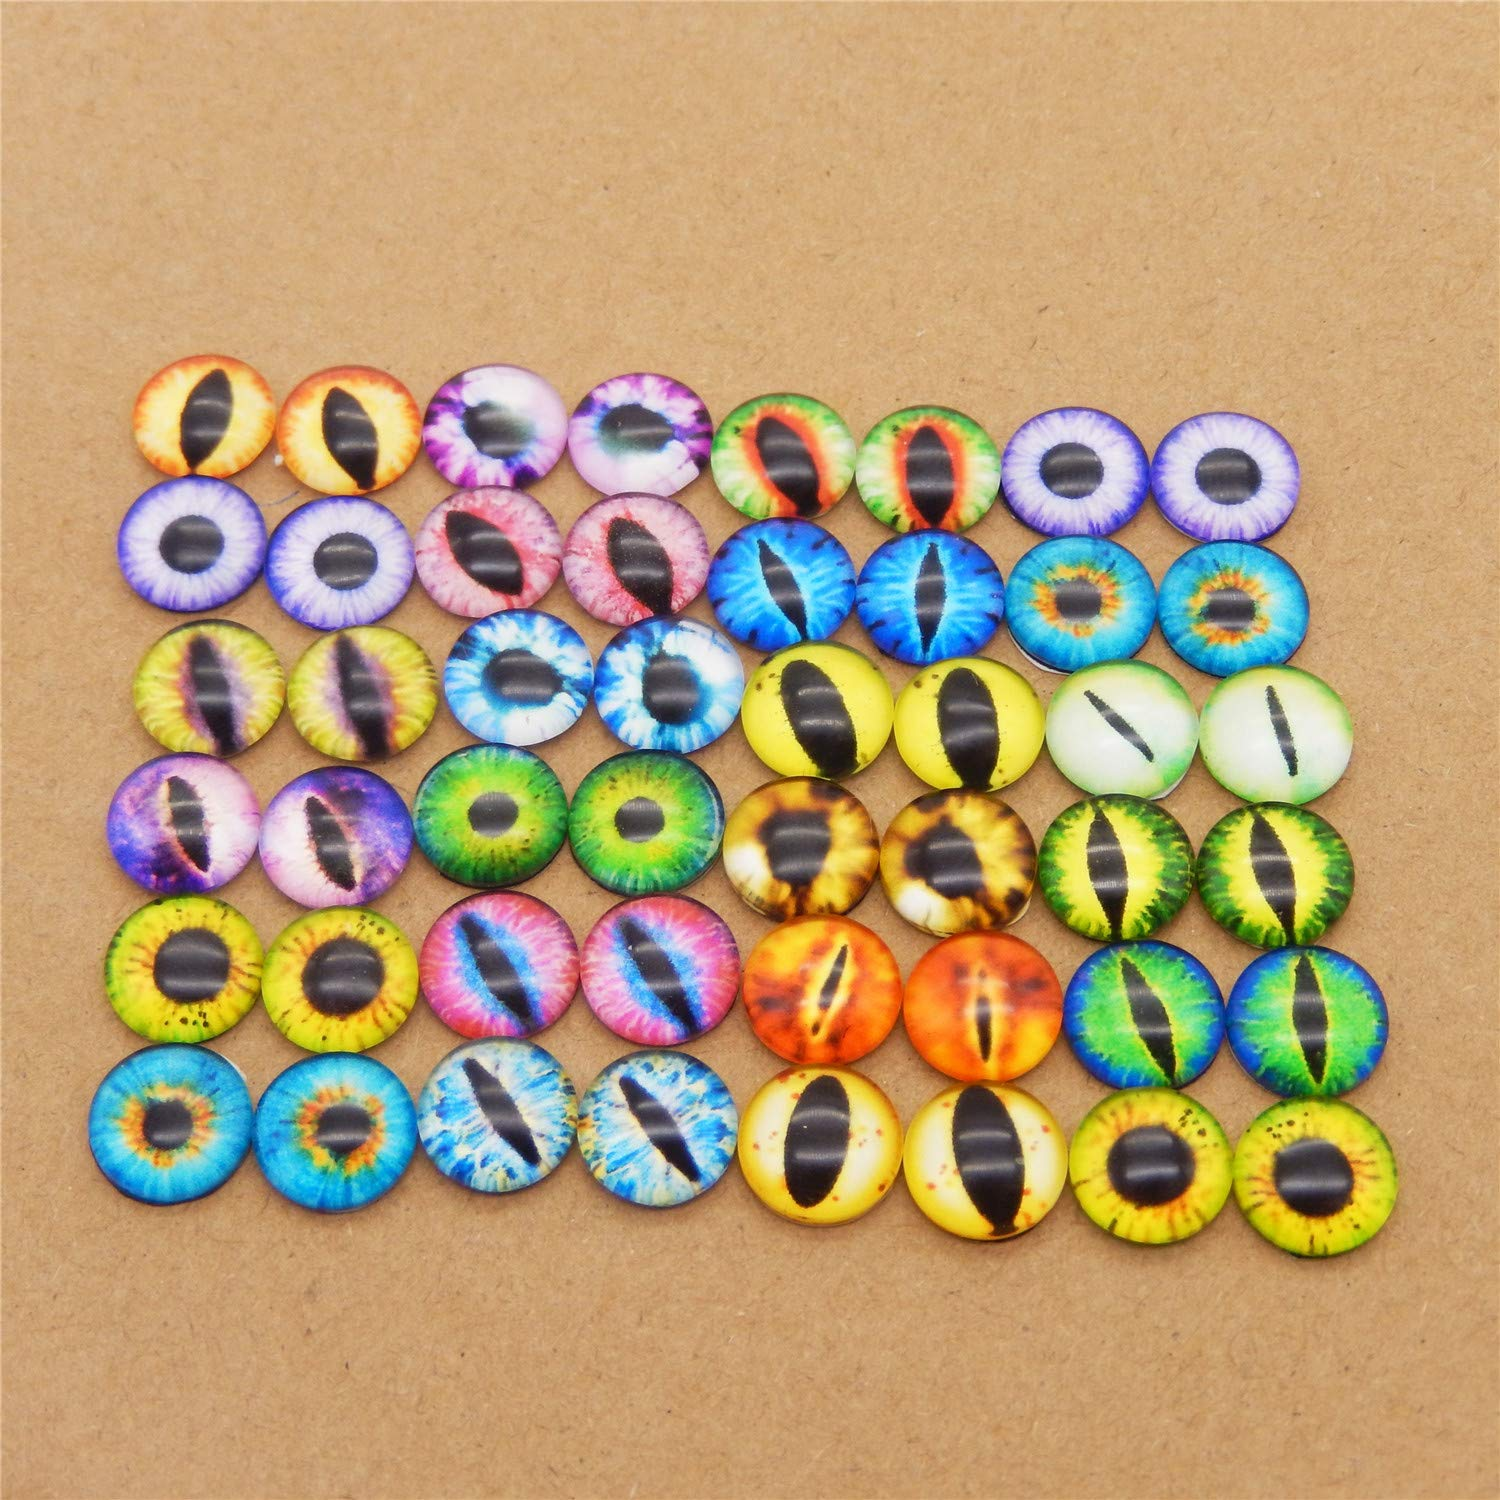 JulieWang 200PCS Vintage Mixed Style Cat Ghost Alien Evil Eyes Glass Cameo Jewelry Making Cabochons 6MM